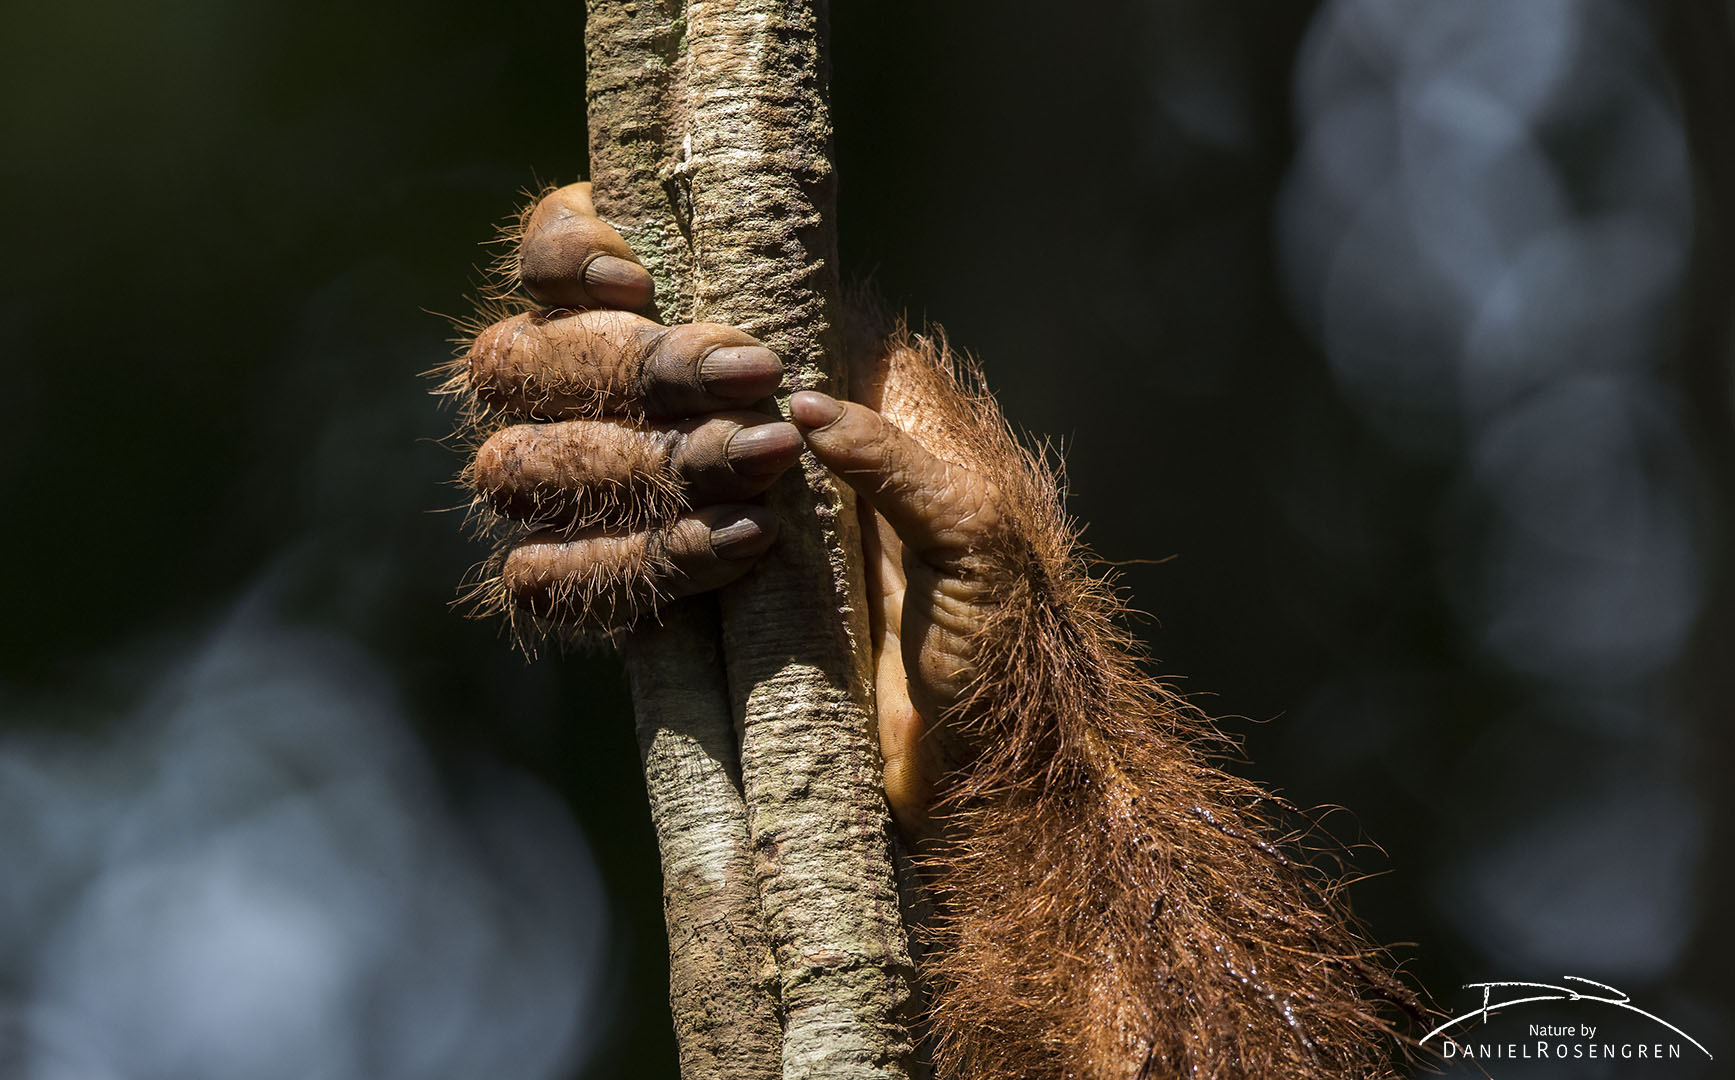 The hand of an orang-utan learning to survive in the wild. © Daniel Rosengren